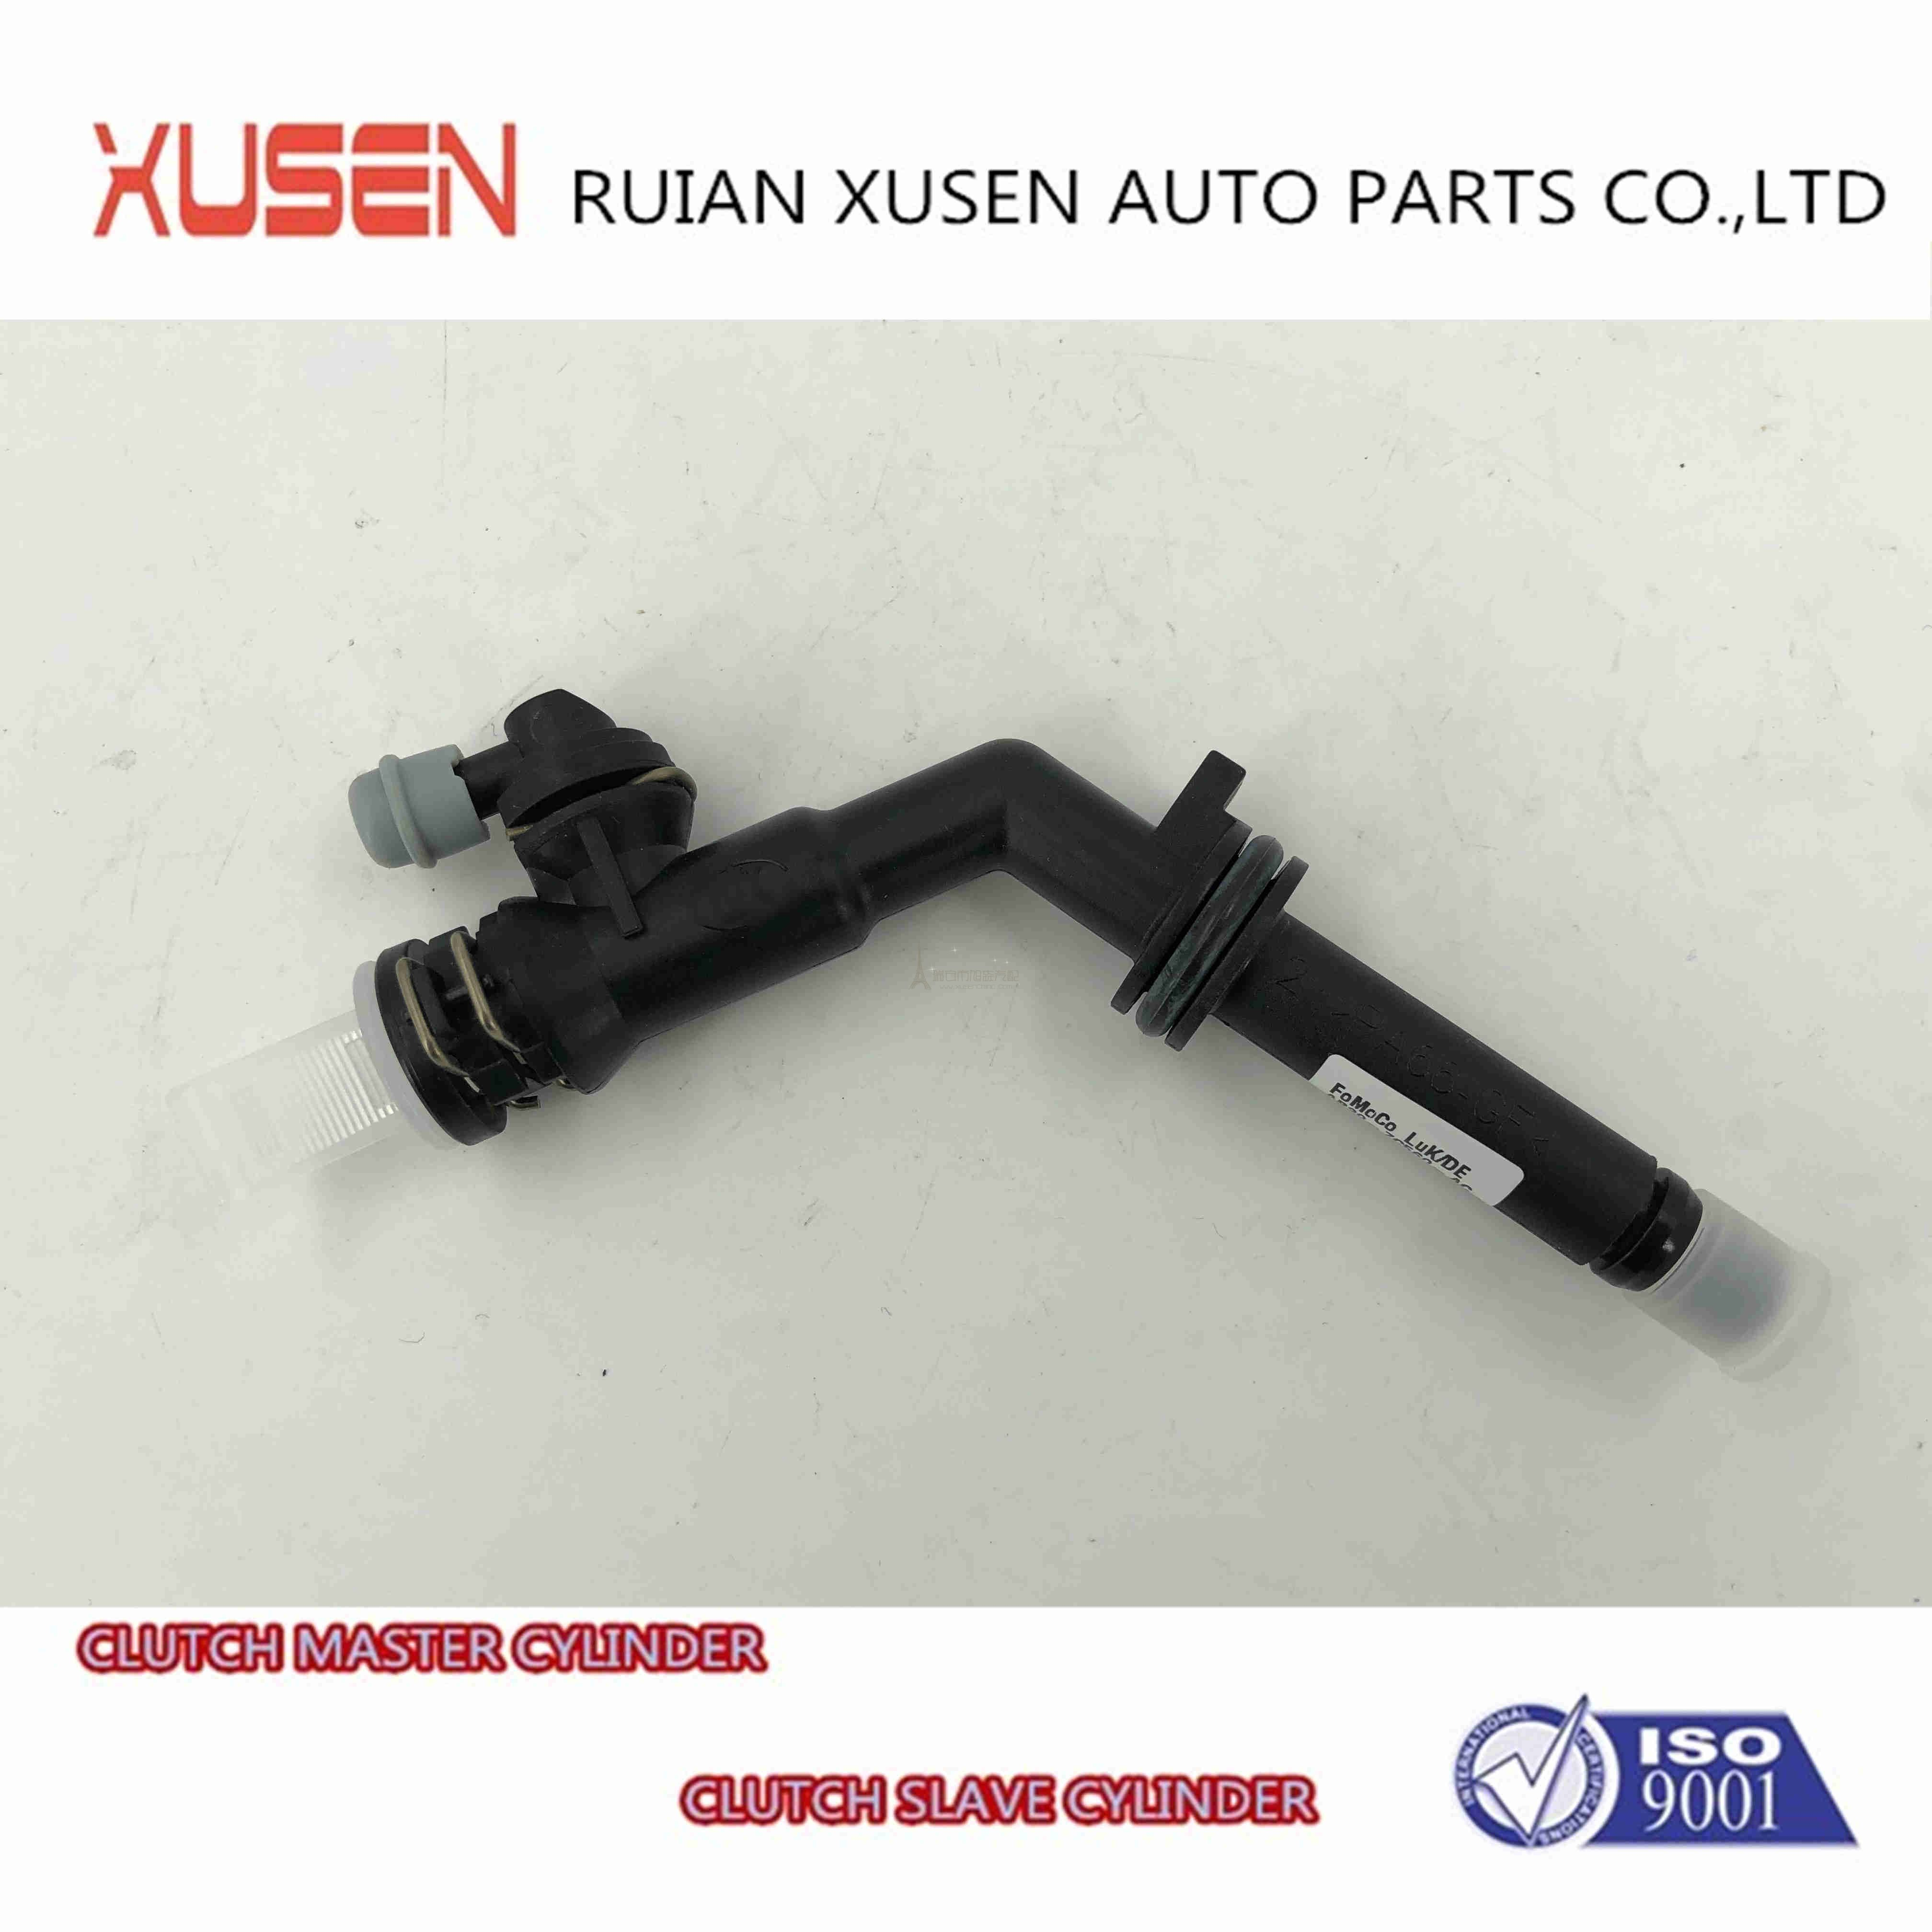 Clutch slave cylinder adaptor AB397C560AC for FORD RANGER MAZDA BT50